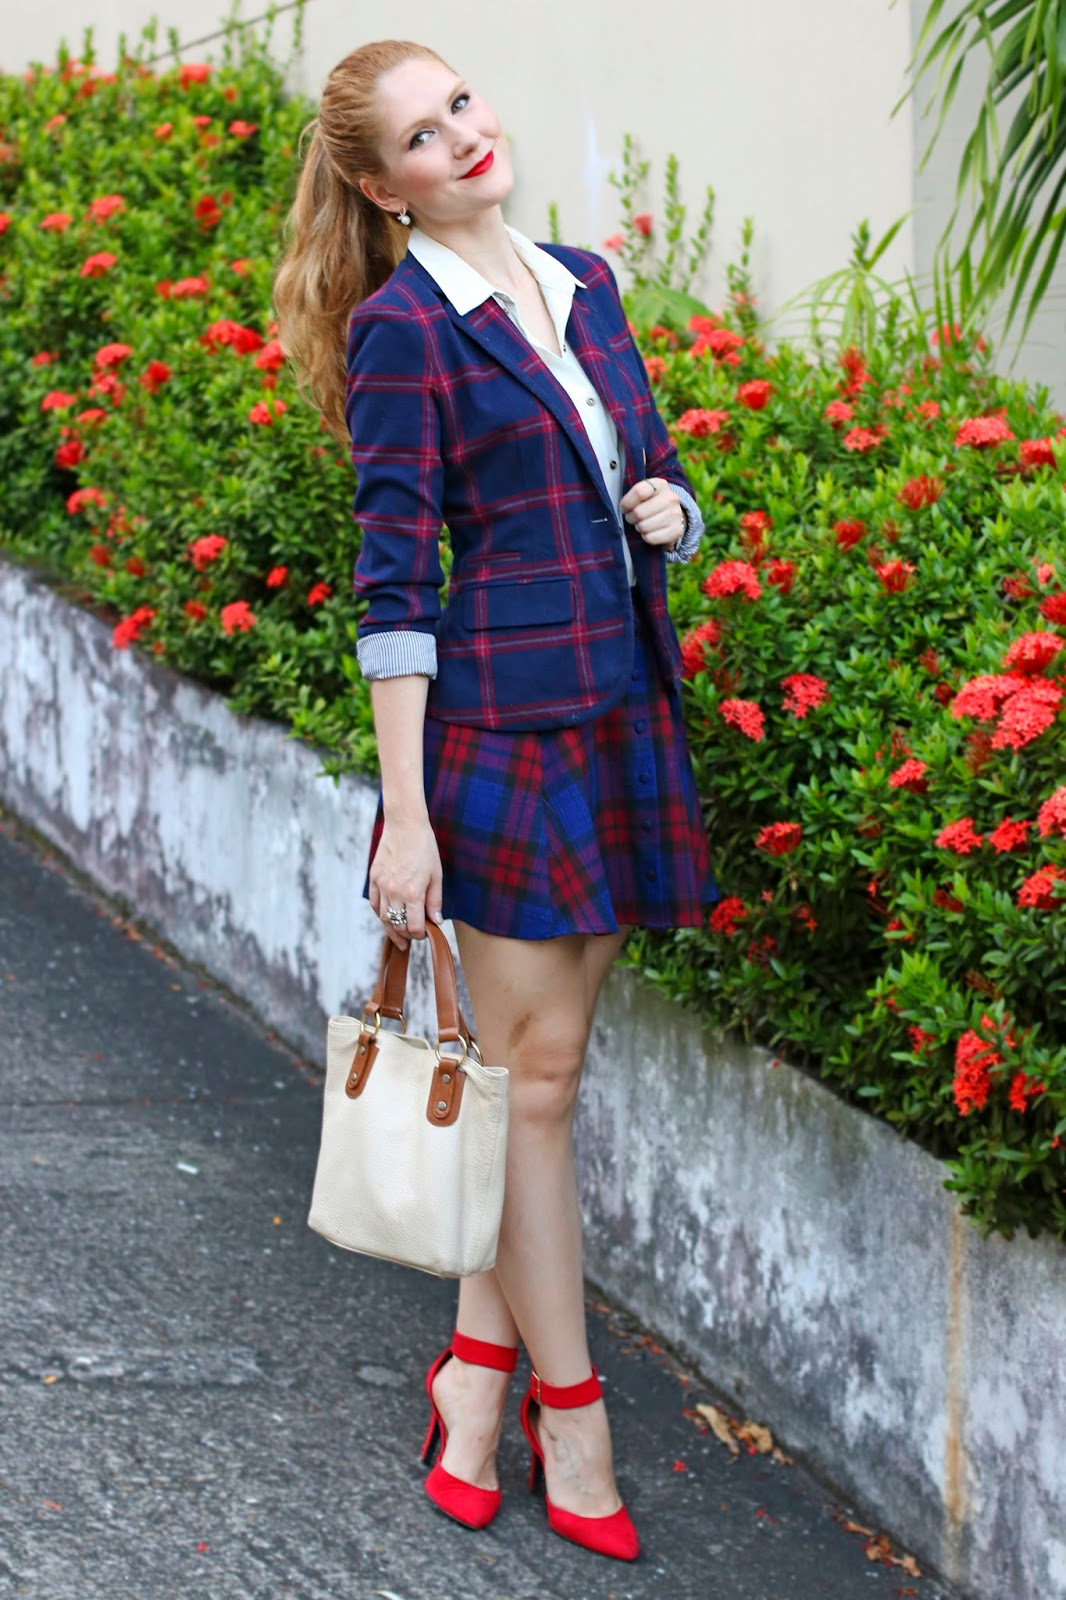 Loving this cute plaid outfit for Christmas!